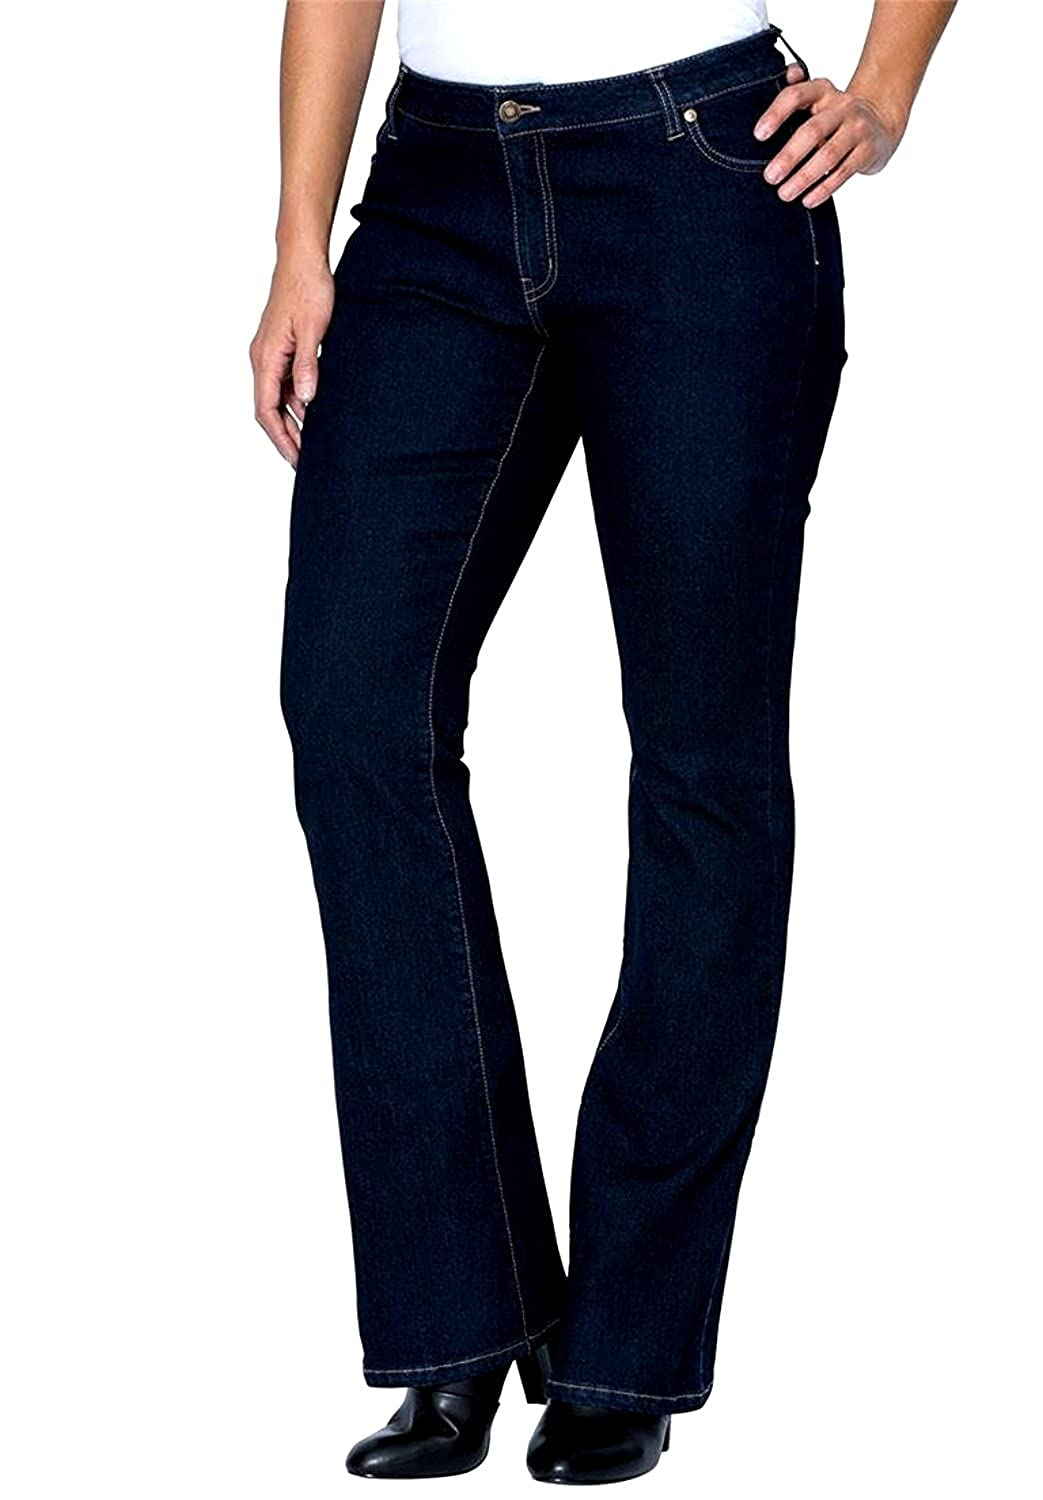 JD&C Womens Plus Size Blue/Black Denim Jeans Tall Long Bootcut Straight Leg Pants